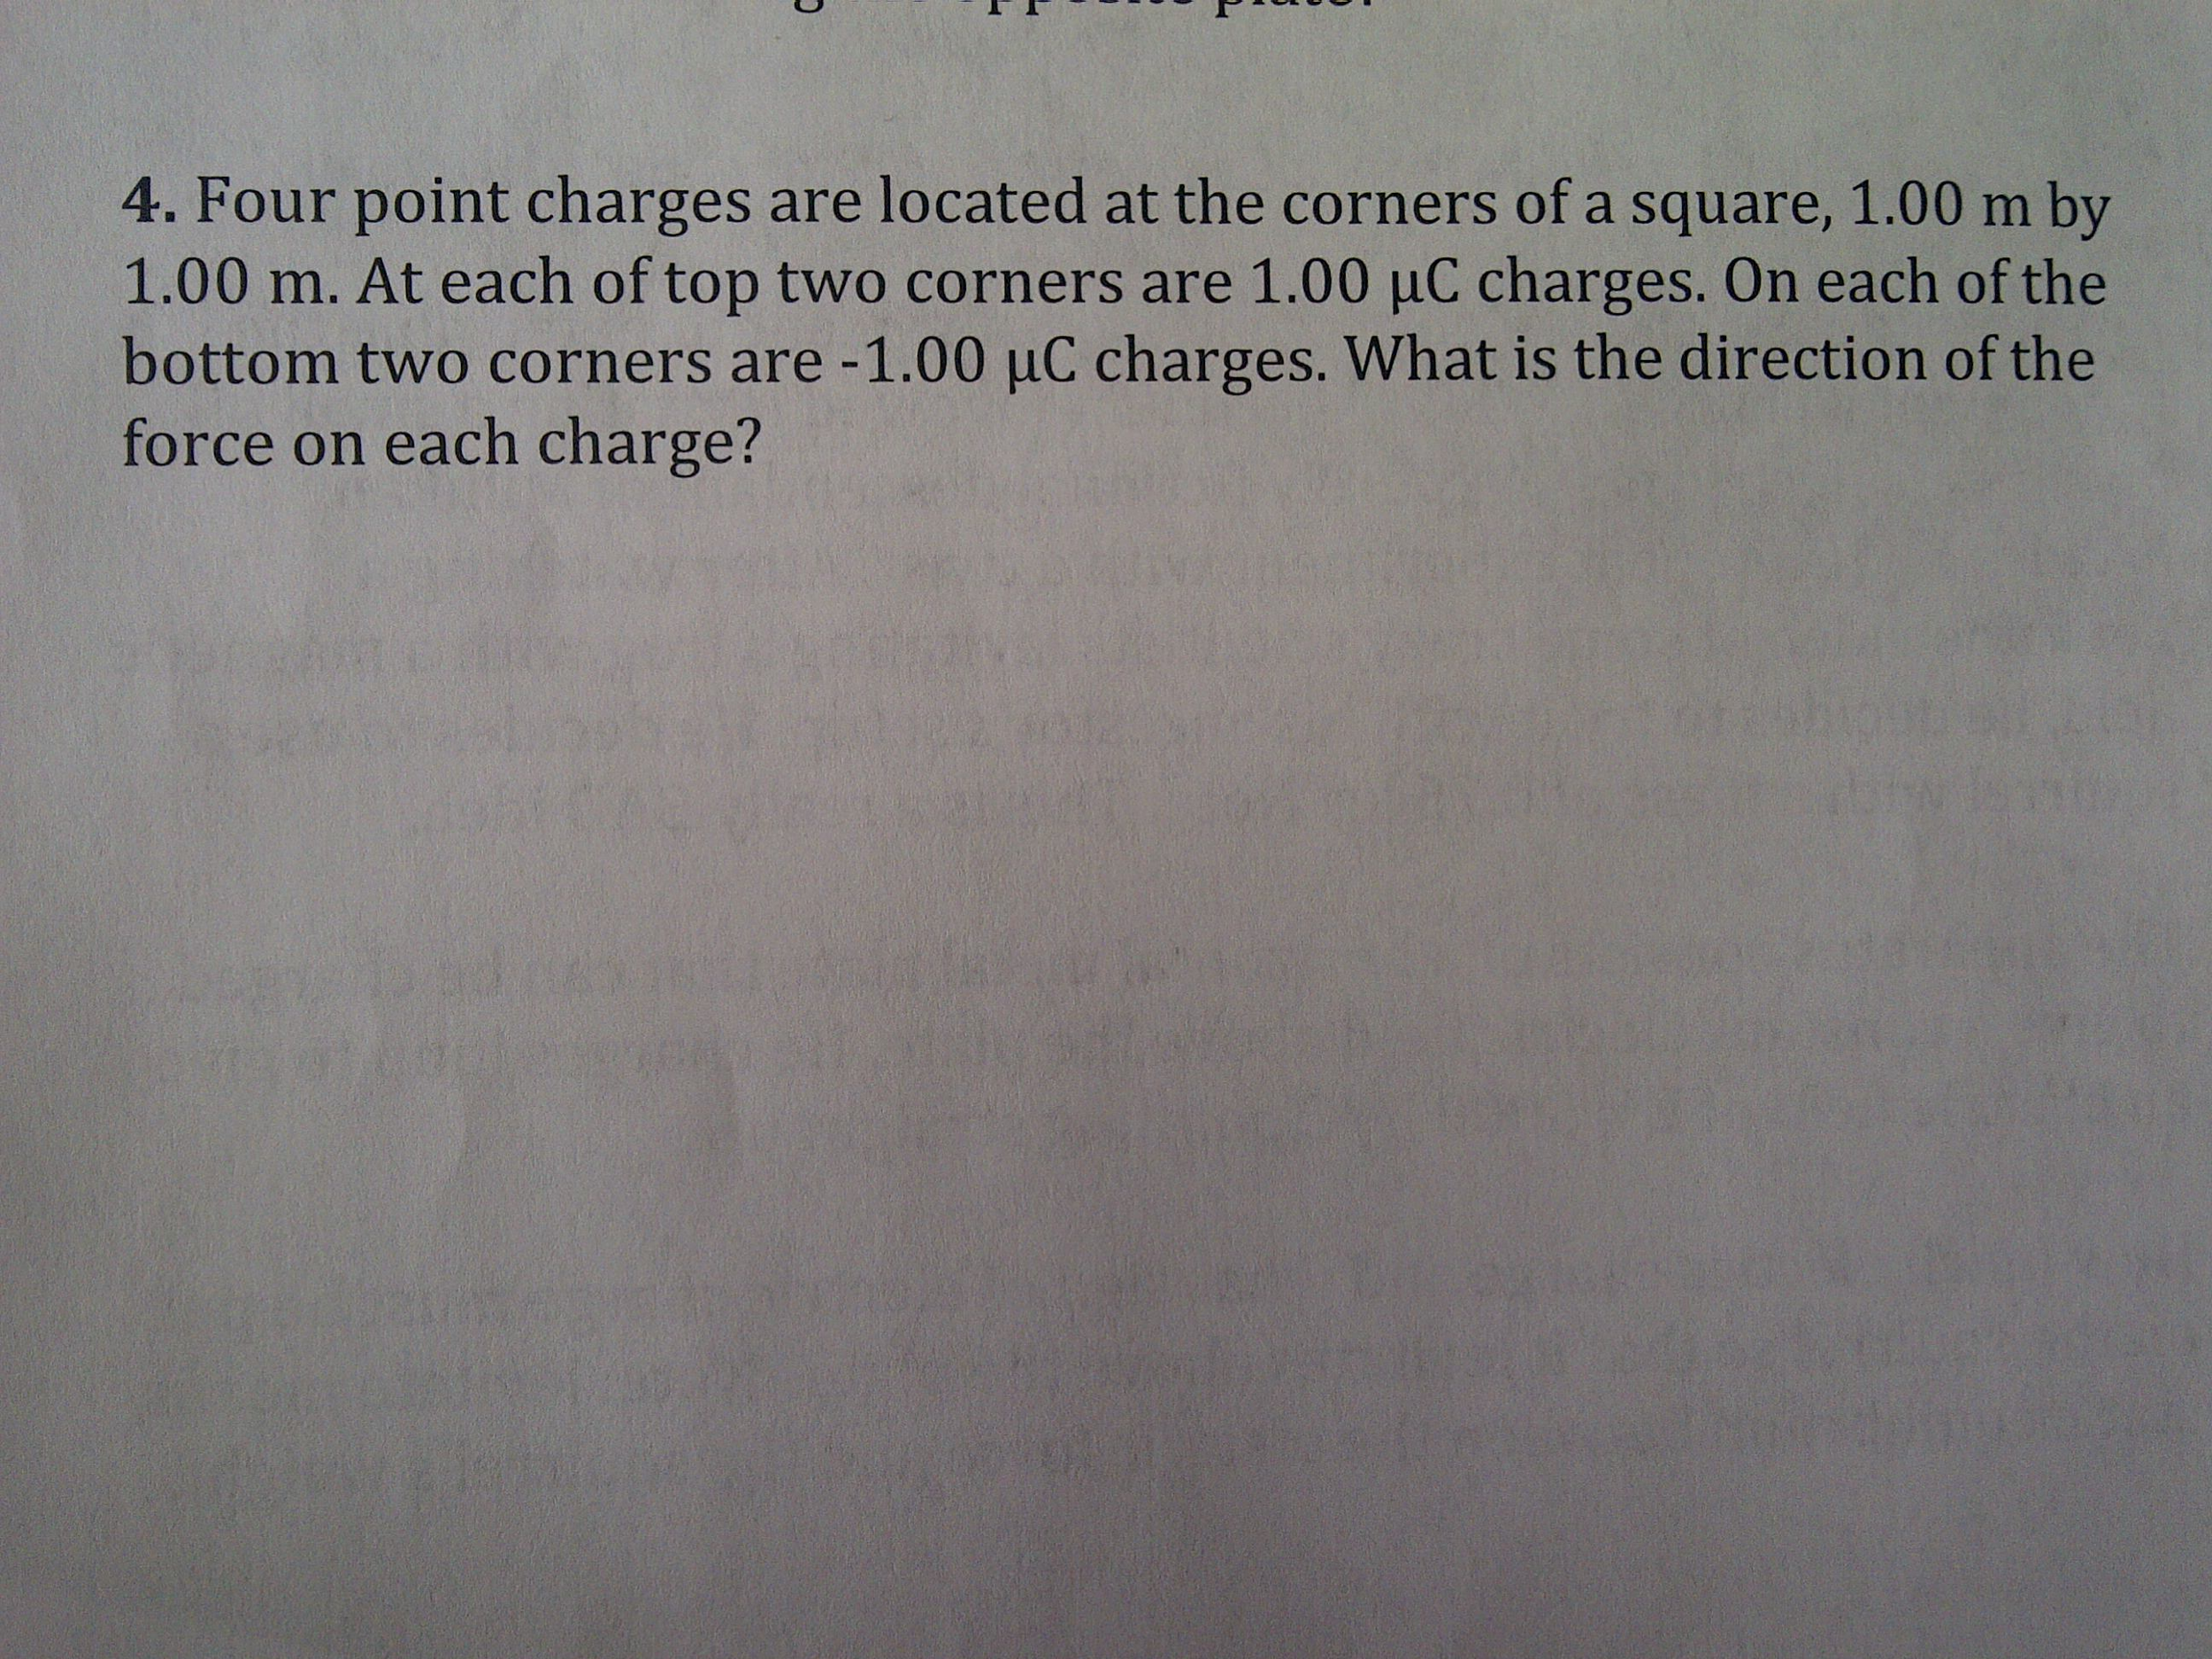 Four point charges are located at the corners of a